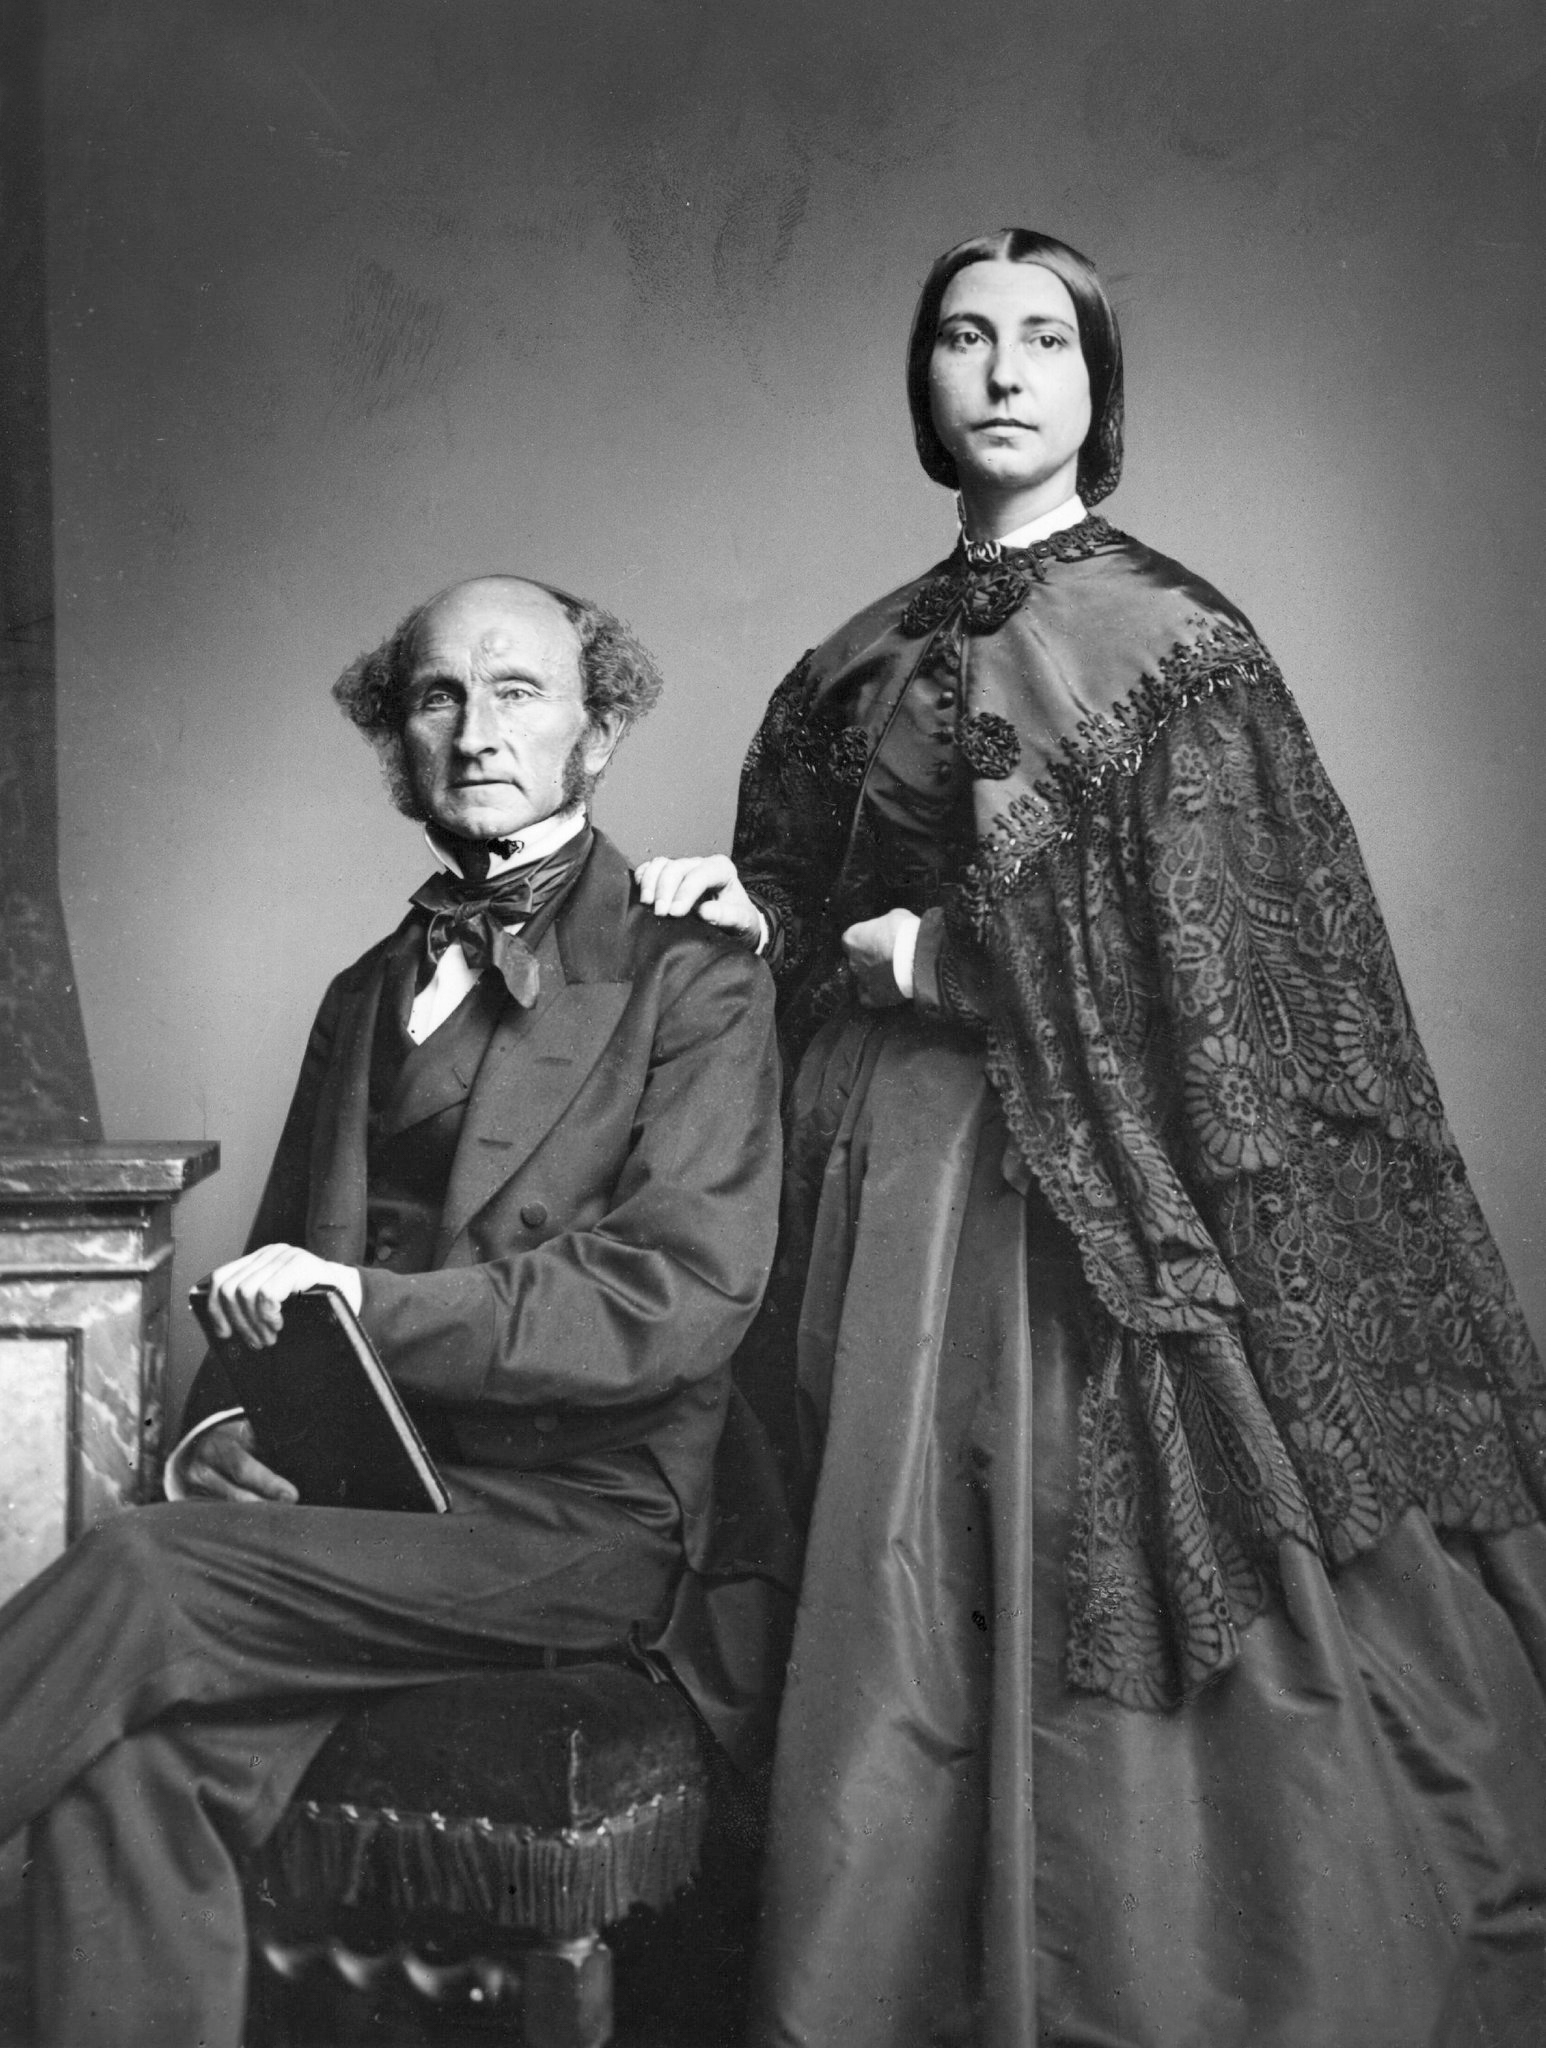 John Stuart Mill with Helen Taylor, the daughter of Mill's late wife and sometimes writing partner, Harriet Taylor, in 1858 (Wikimedia Commons)